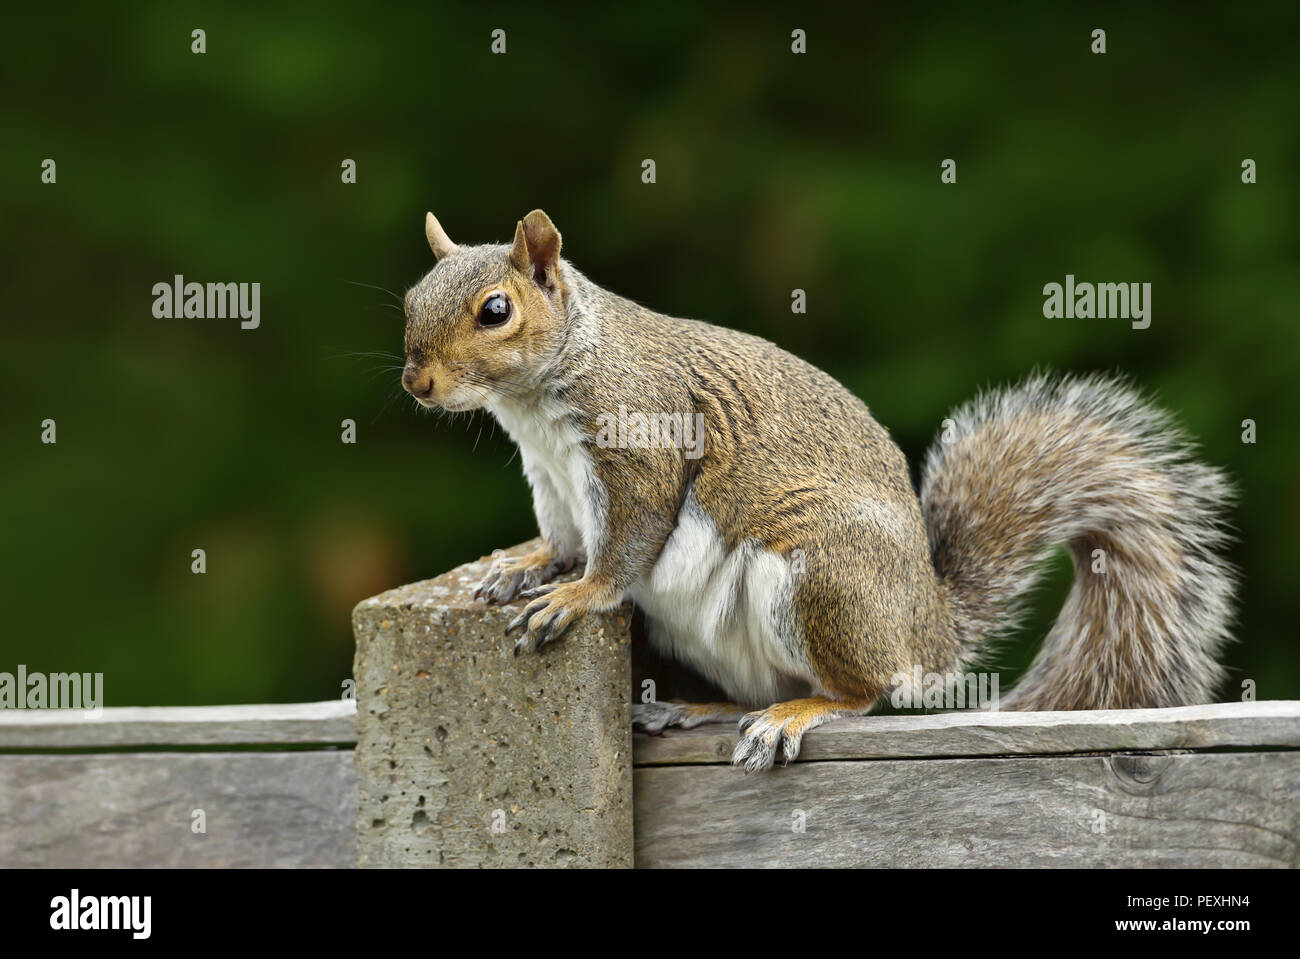 Close up of a grey squirrel sitting on a fence, UK Stock Photo